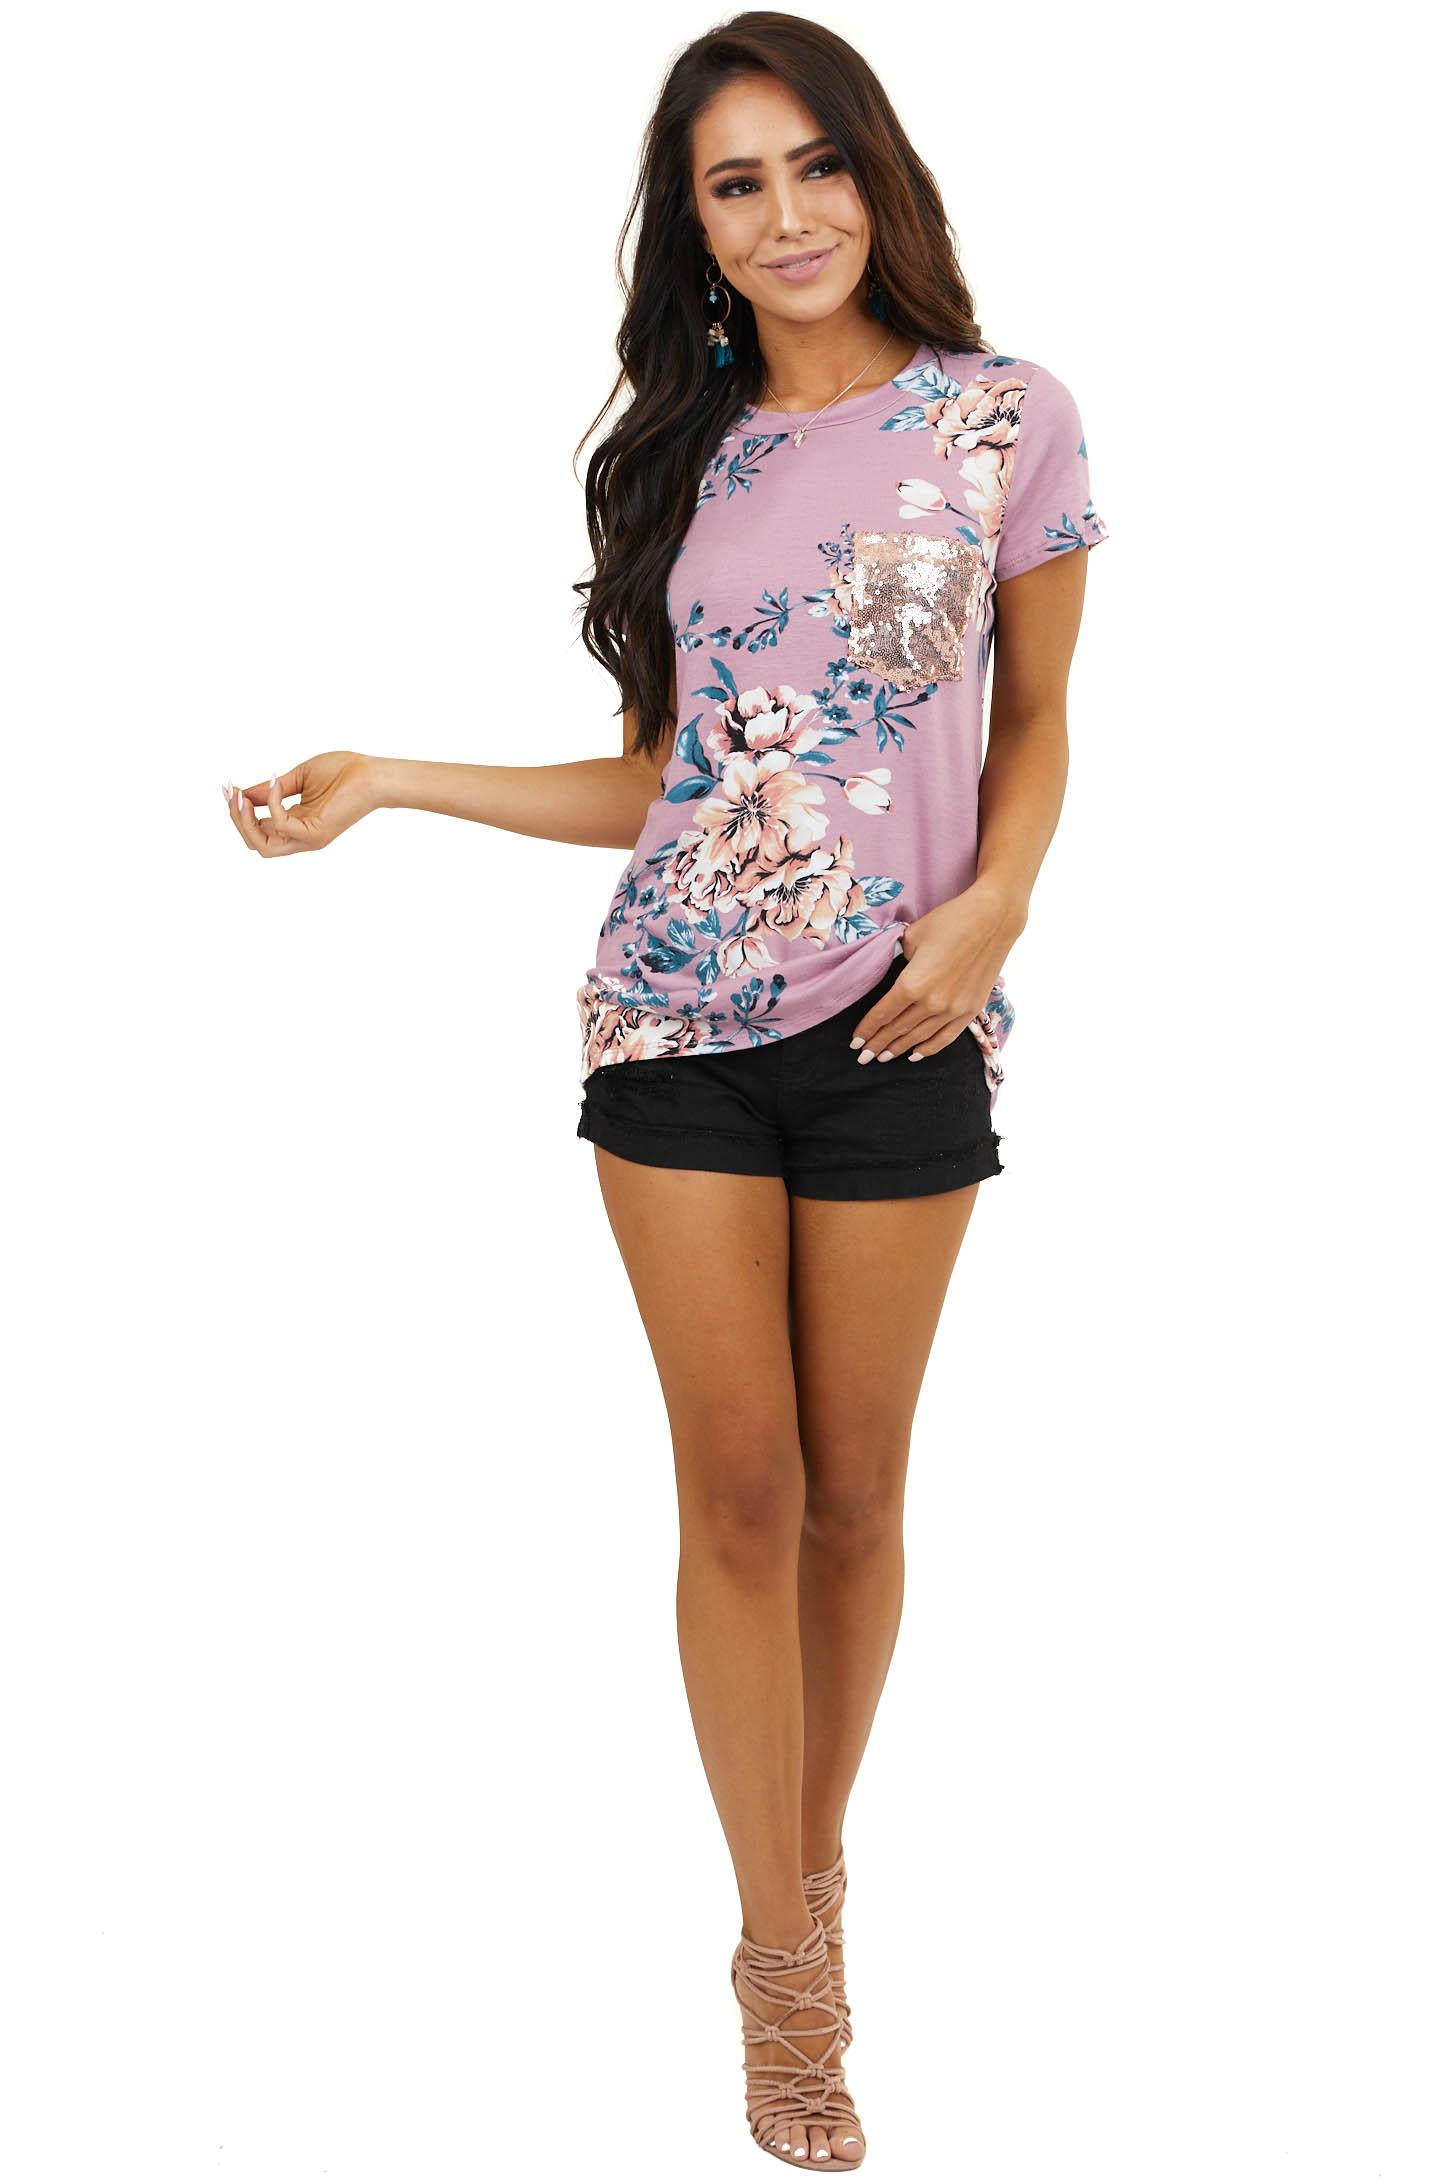 Dusty Rose Short Sleeve Floral Top with Sequin Front Pocket